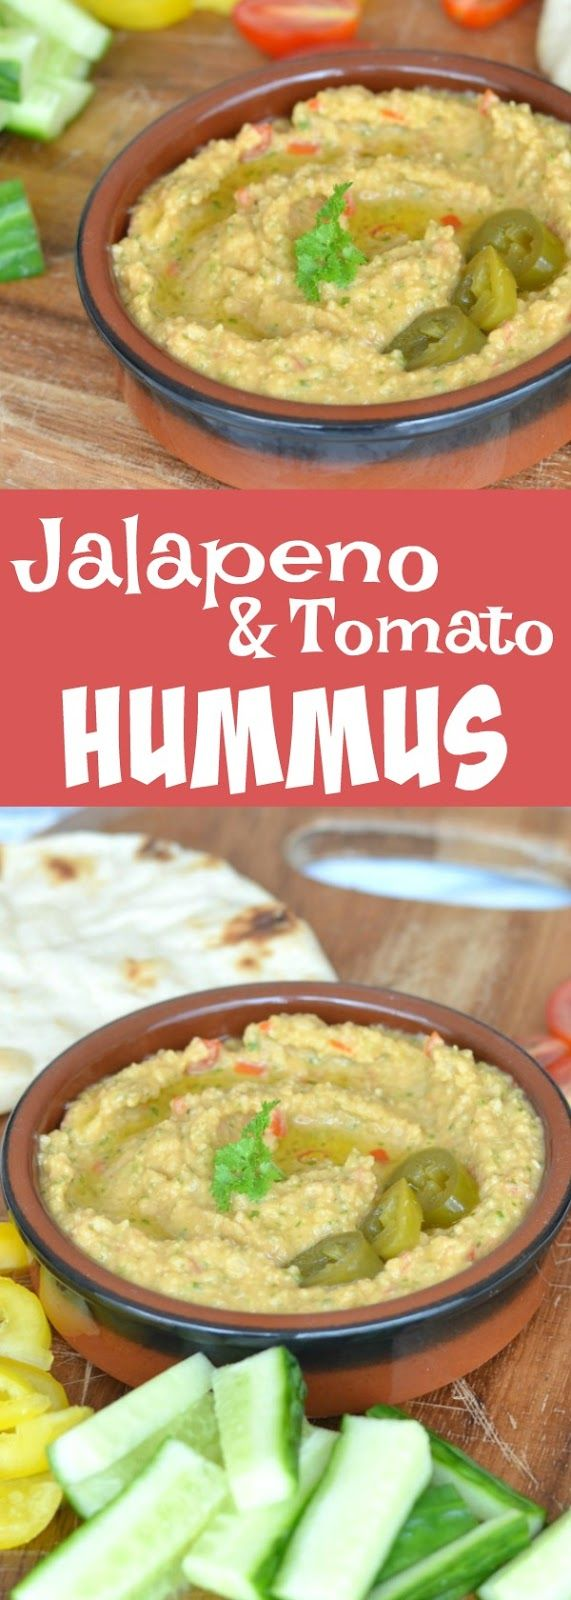 Jalapeno and Tomato Hummus